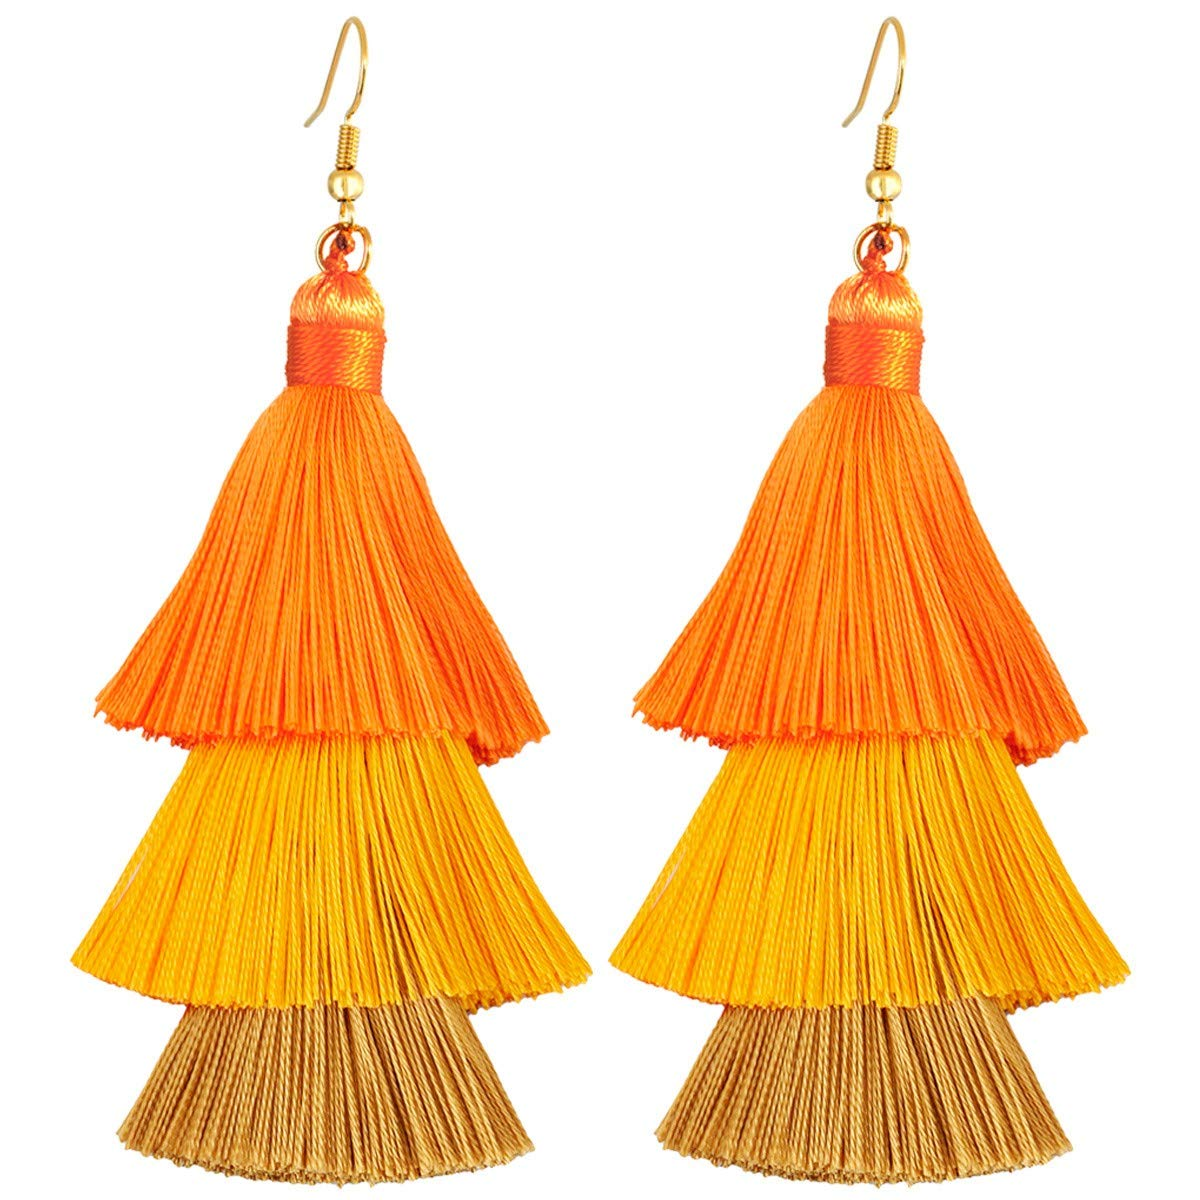 TUMBEELLUWA Colorful Layered Tassel Earrings Hook Tiered Thread Dangle Drop Earrings